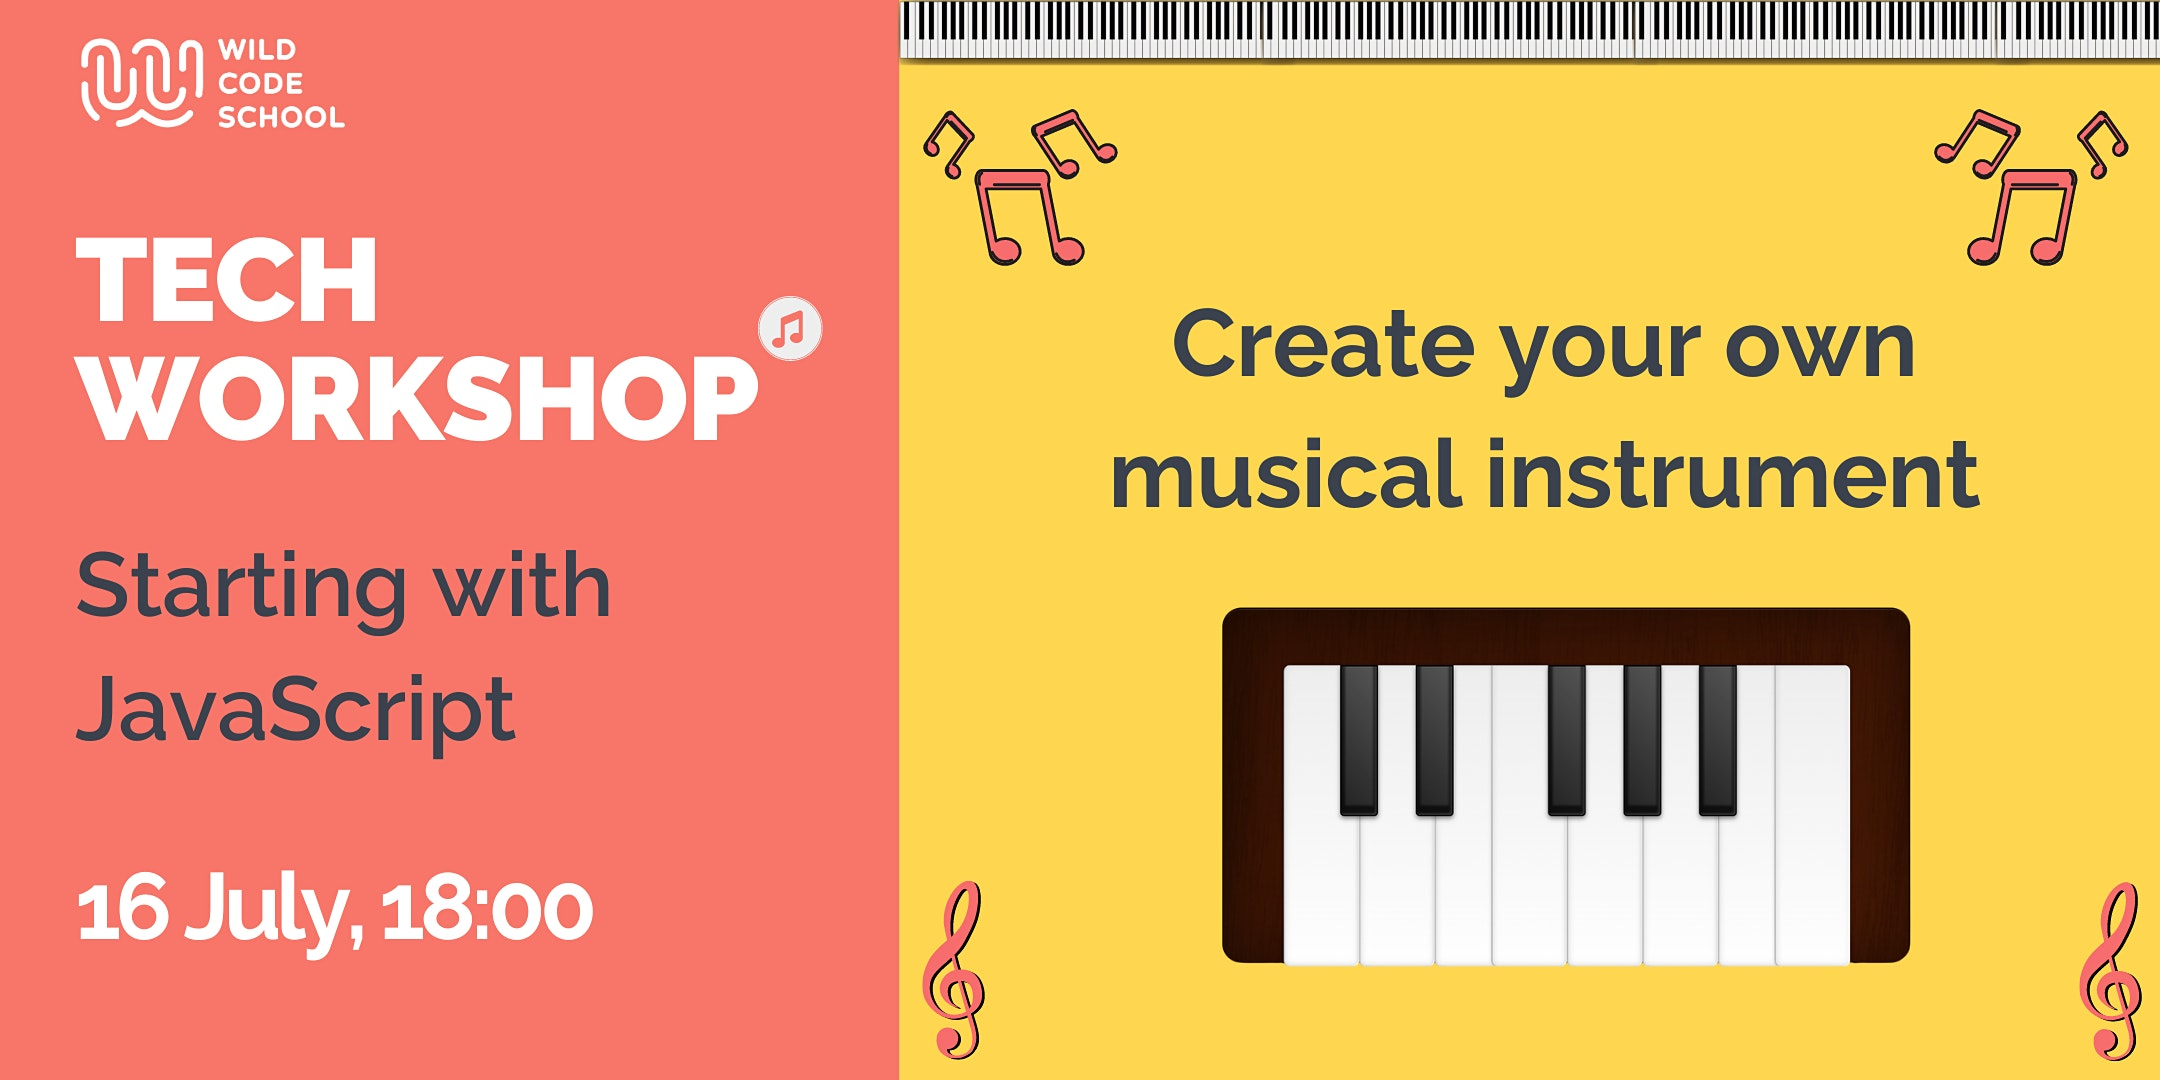 Tech Workshop |JavaScript| Create your own musical instrument!